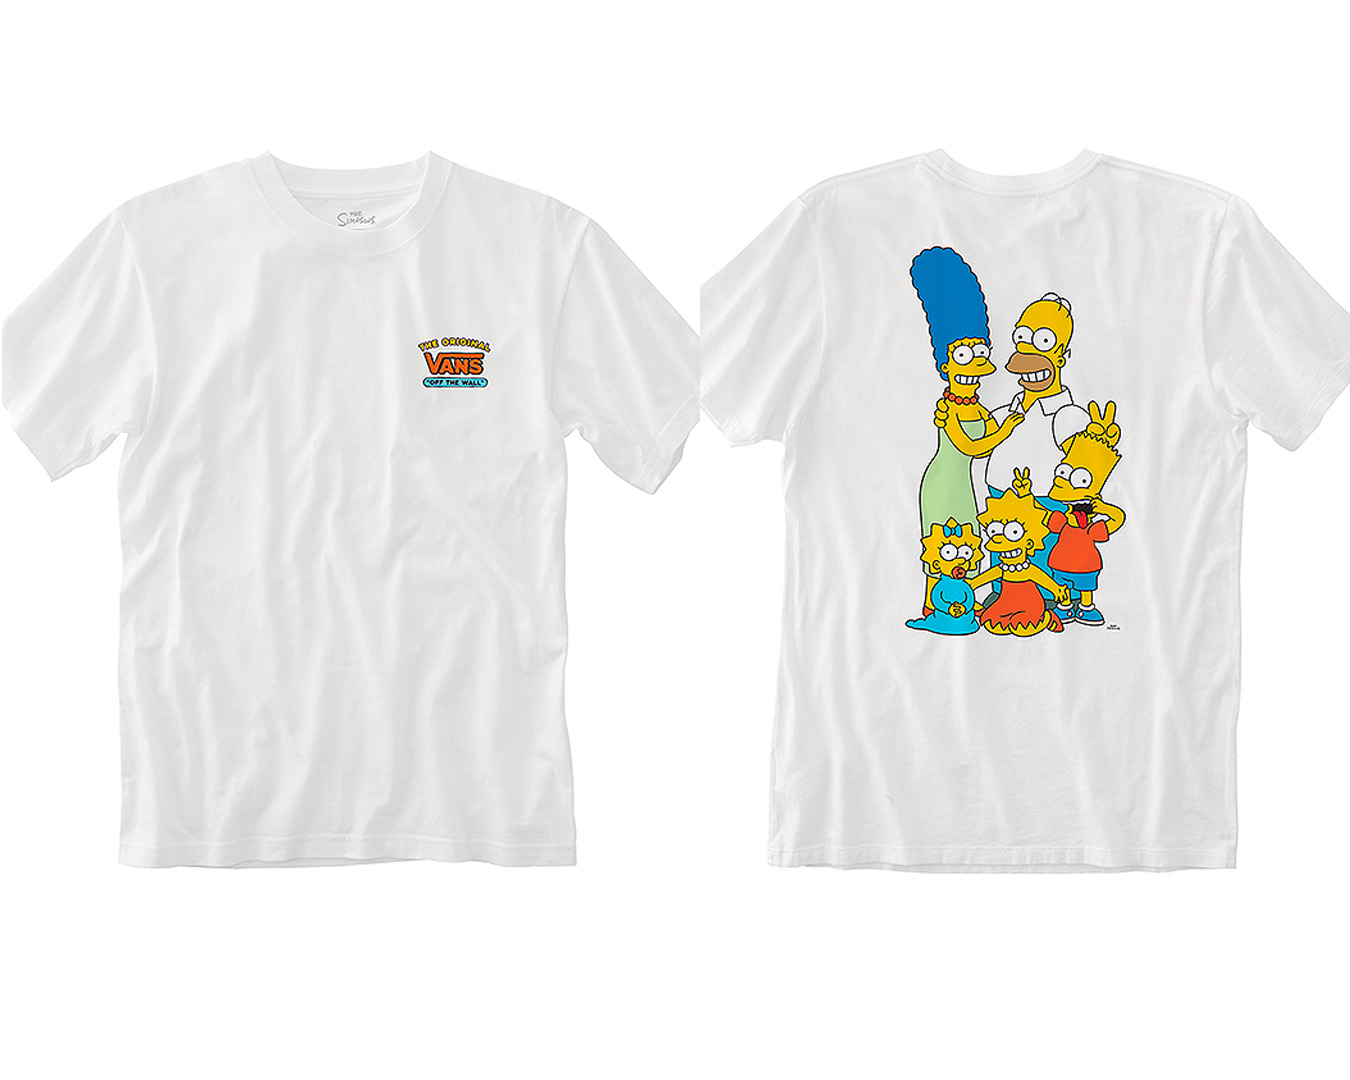 The front and back view of the Simpsons x Vans collab tshirt.